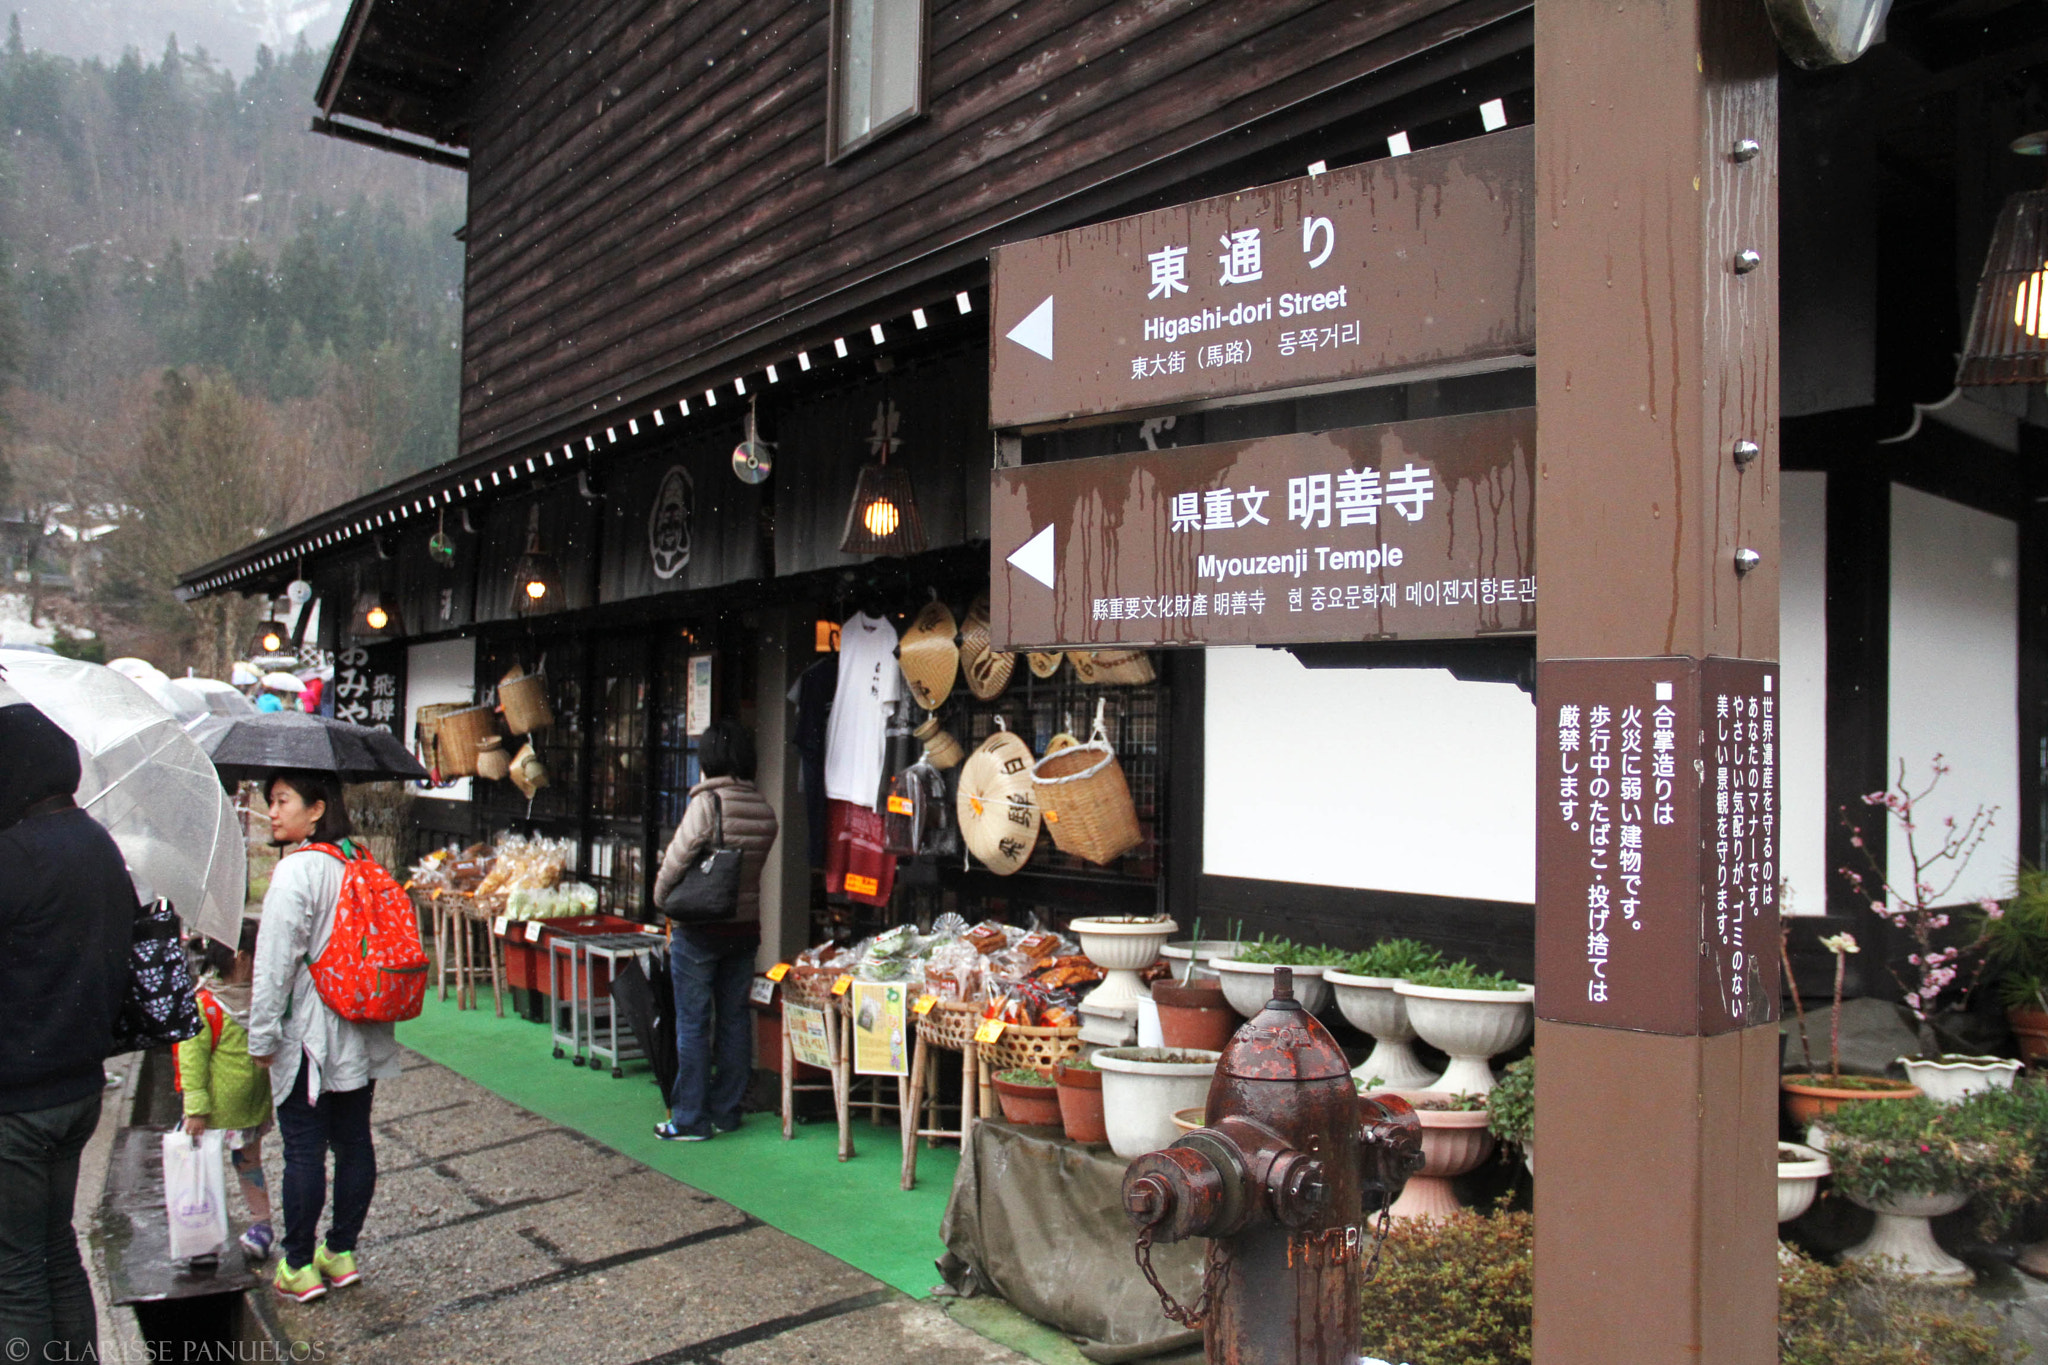 f6e38258f4f082141f78c1df029b91bf - Japan Travel Blog April 2015: Shirakawa-go